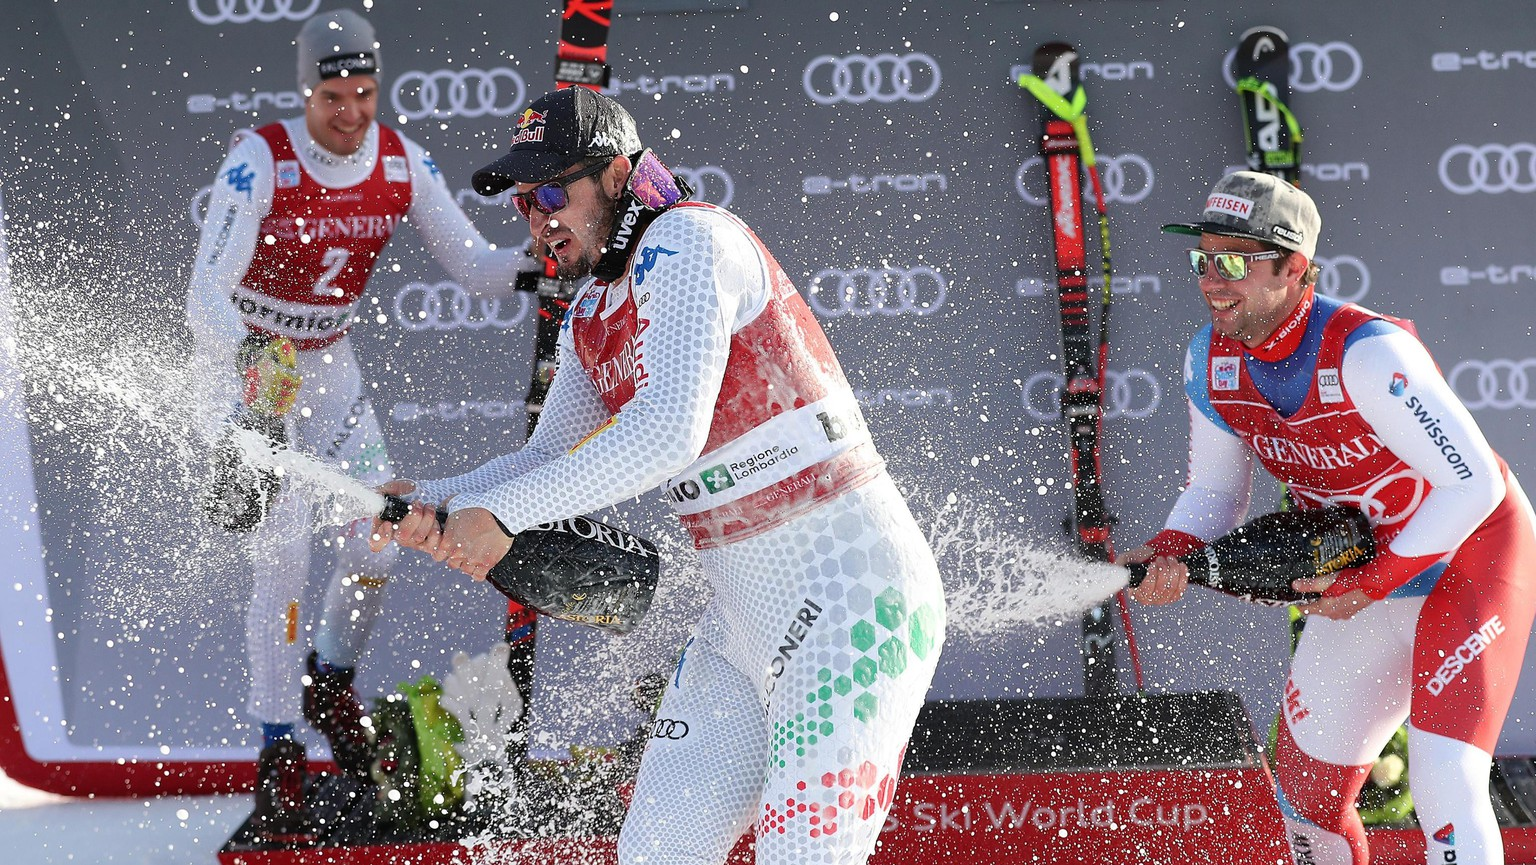 epa07251512 (L-R) Second placed Christof Innerhofer of Italy, winner Dominik Paris of Italy and third placed Beat Feuz of Switzerland celebrate on the podium after the Men's Downhill race at the FIS Alpine Skiing World Cup event in Bormio, Italy, 28 December 2018.  EPA/ANDREA SOLERO